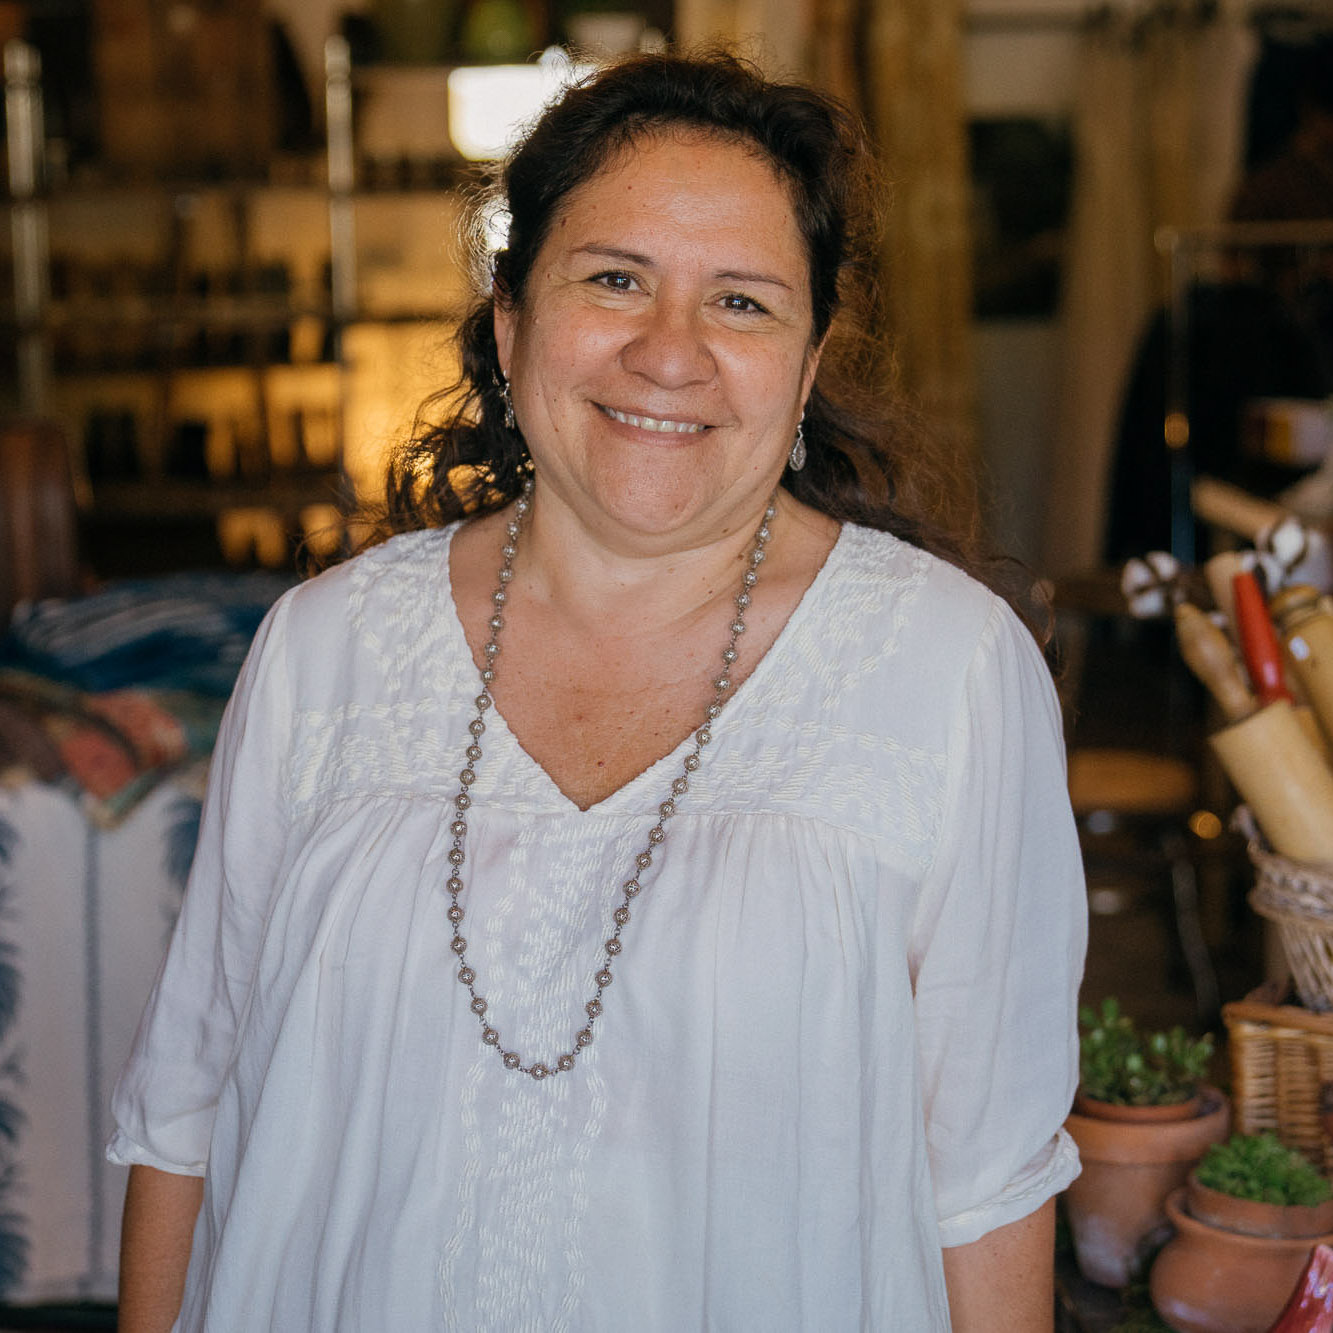 Sara Peterson, Co-Founder of Scout Coffee, recommends shopping at Ruby Rose in San Luis Obispo as part of the Dirt Road Travels city travel guide to San Luis Obispo.